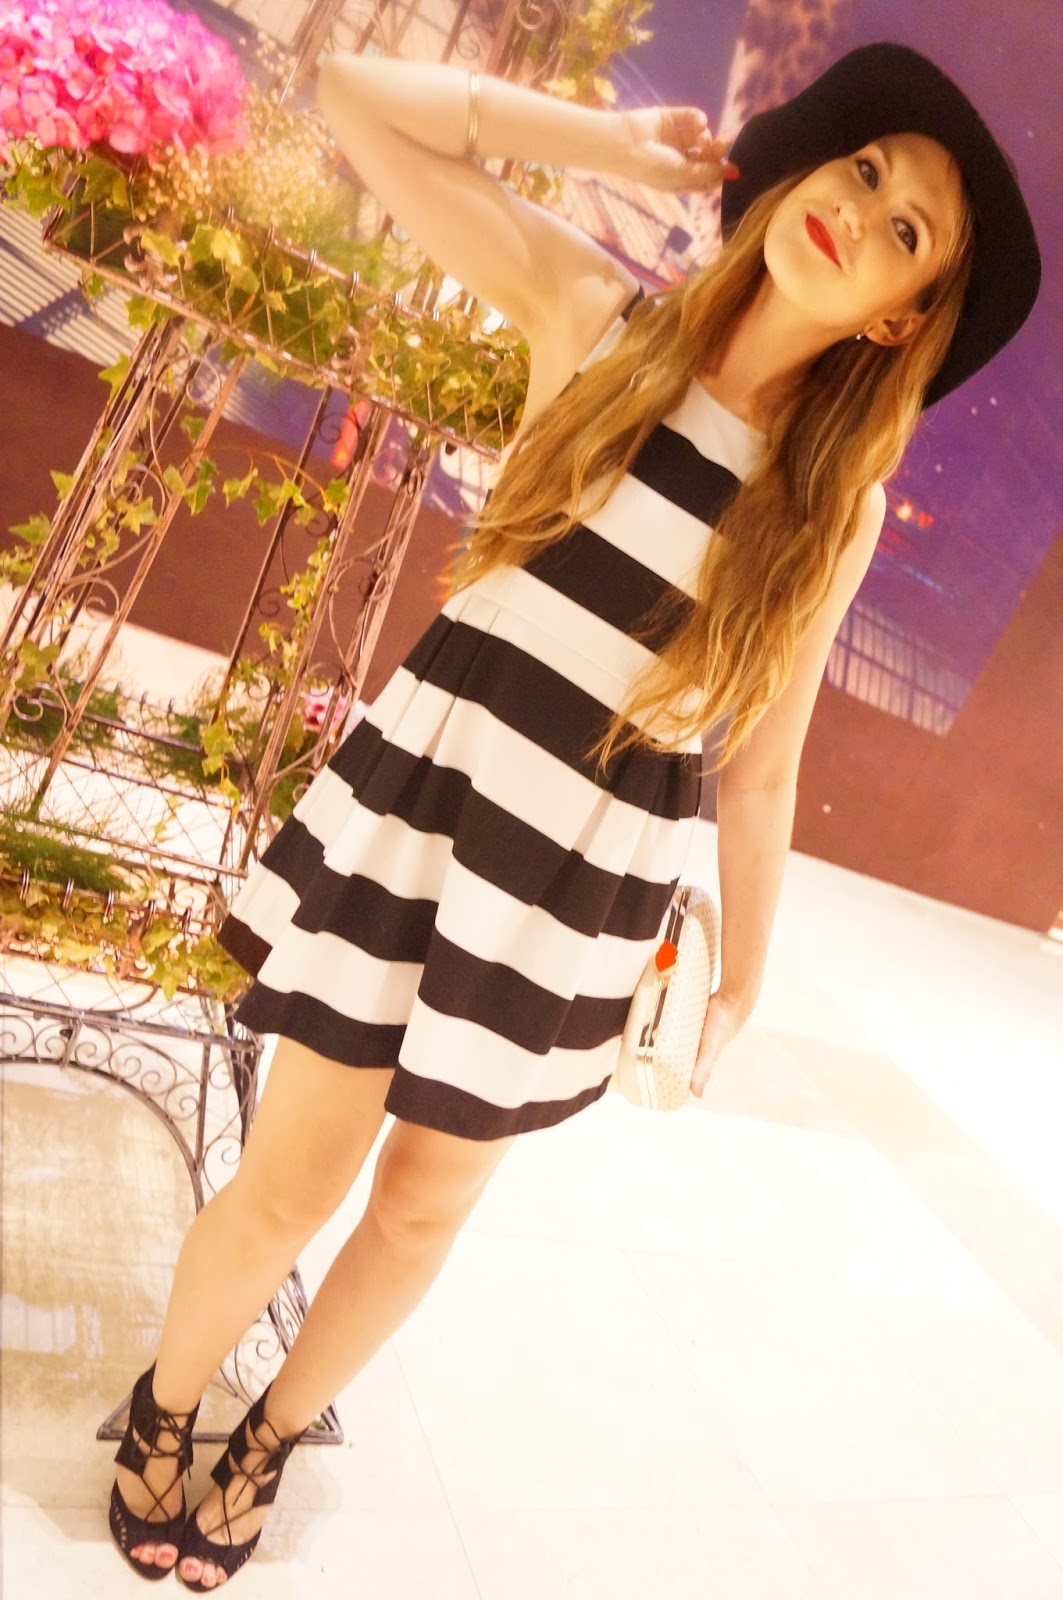 Pair a Black and White dress with a black floppy hat to look Parisian Chic!